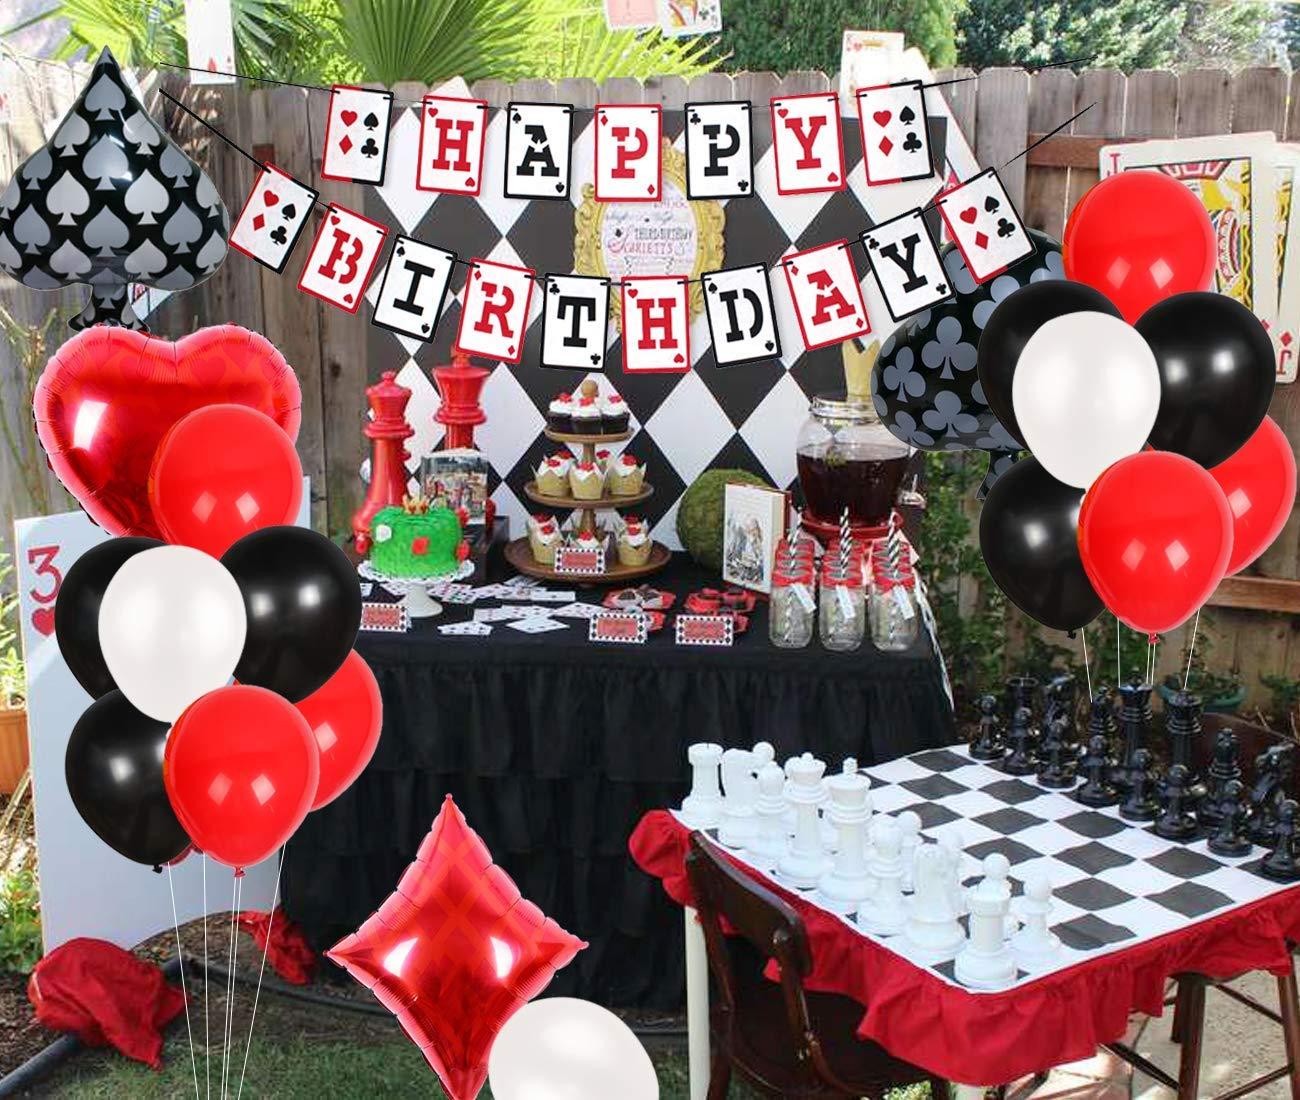 Casino Party spade, heart, club, diamond foil balloons happy birthday banner for birthday party decorations